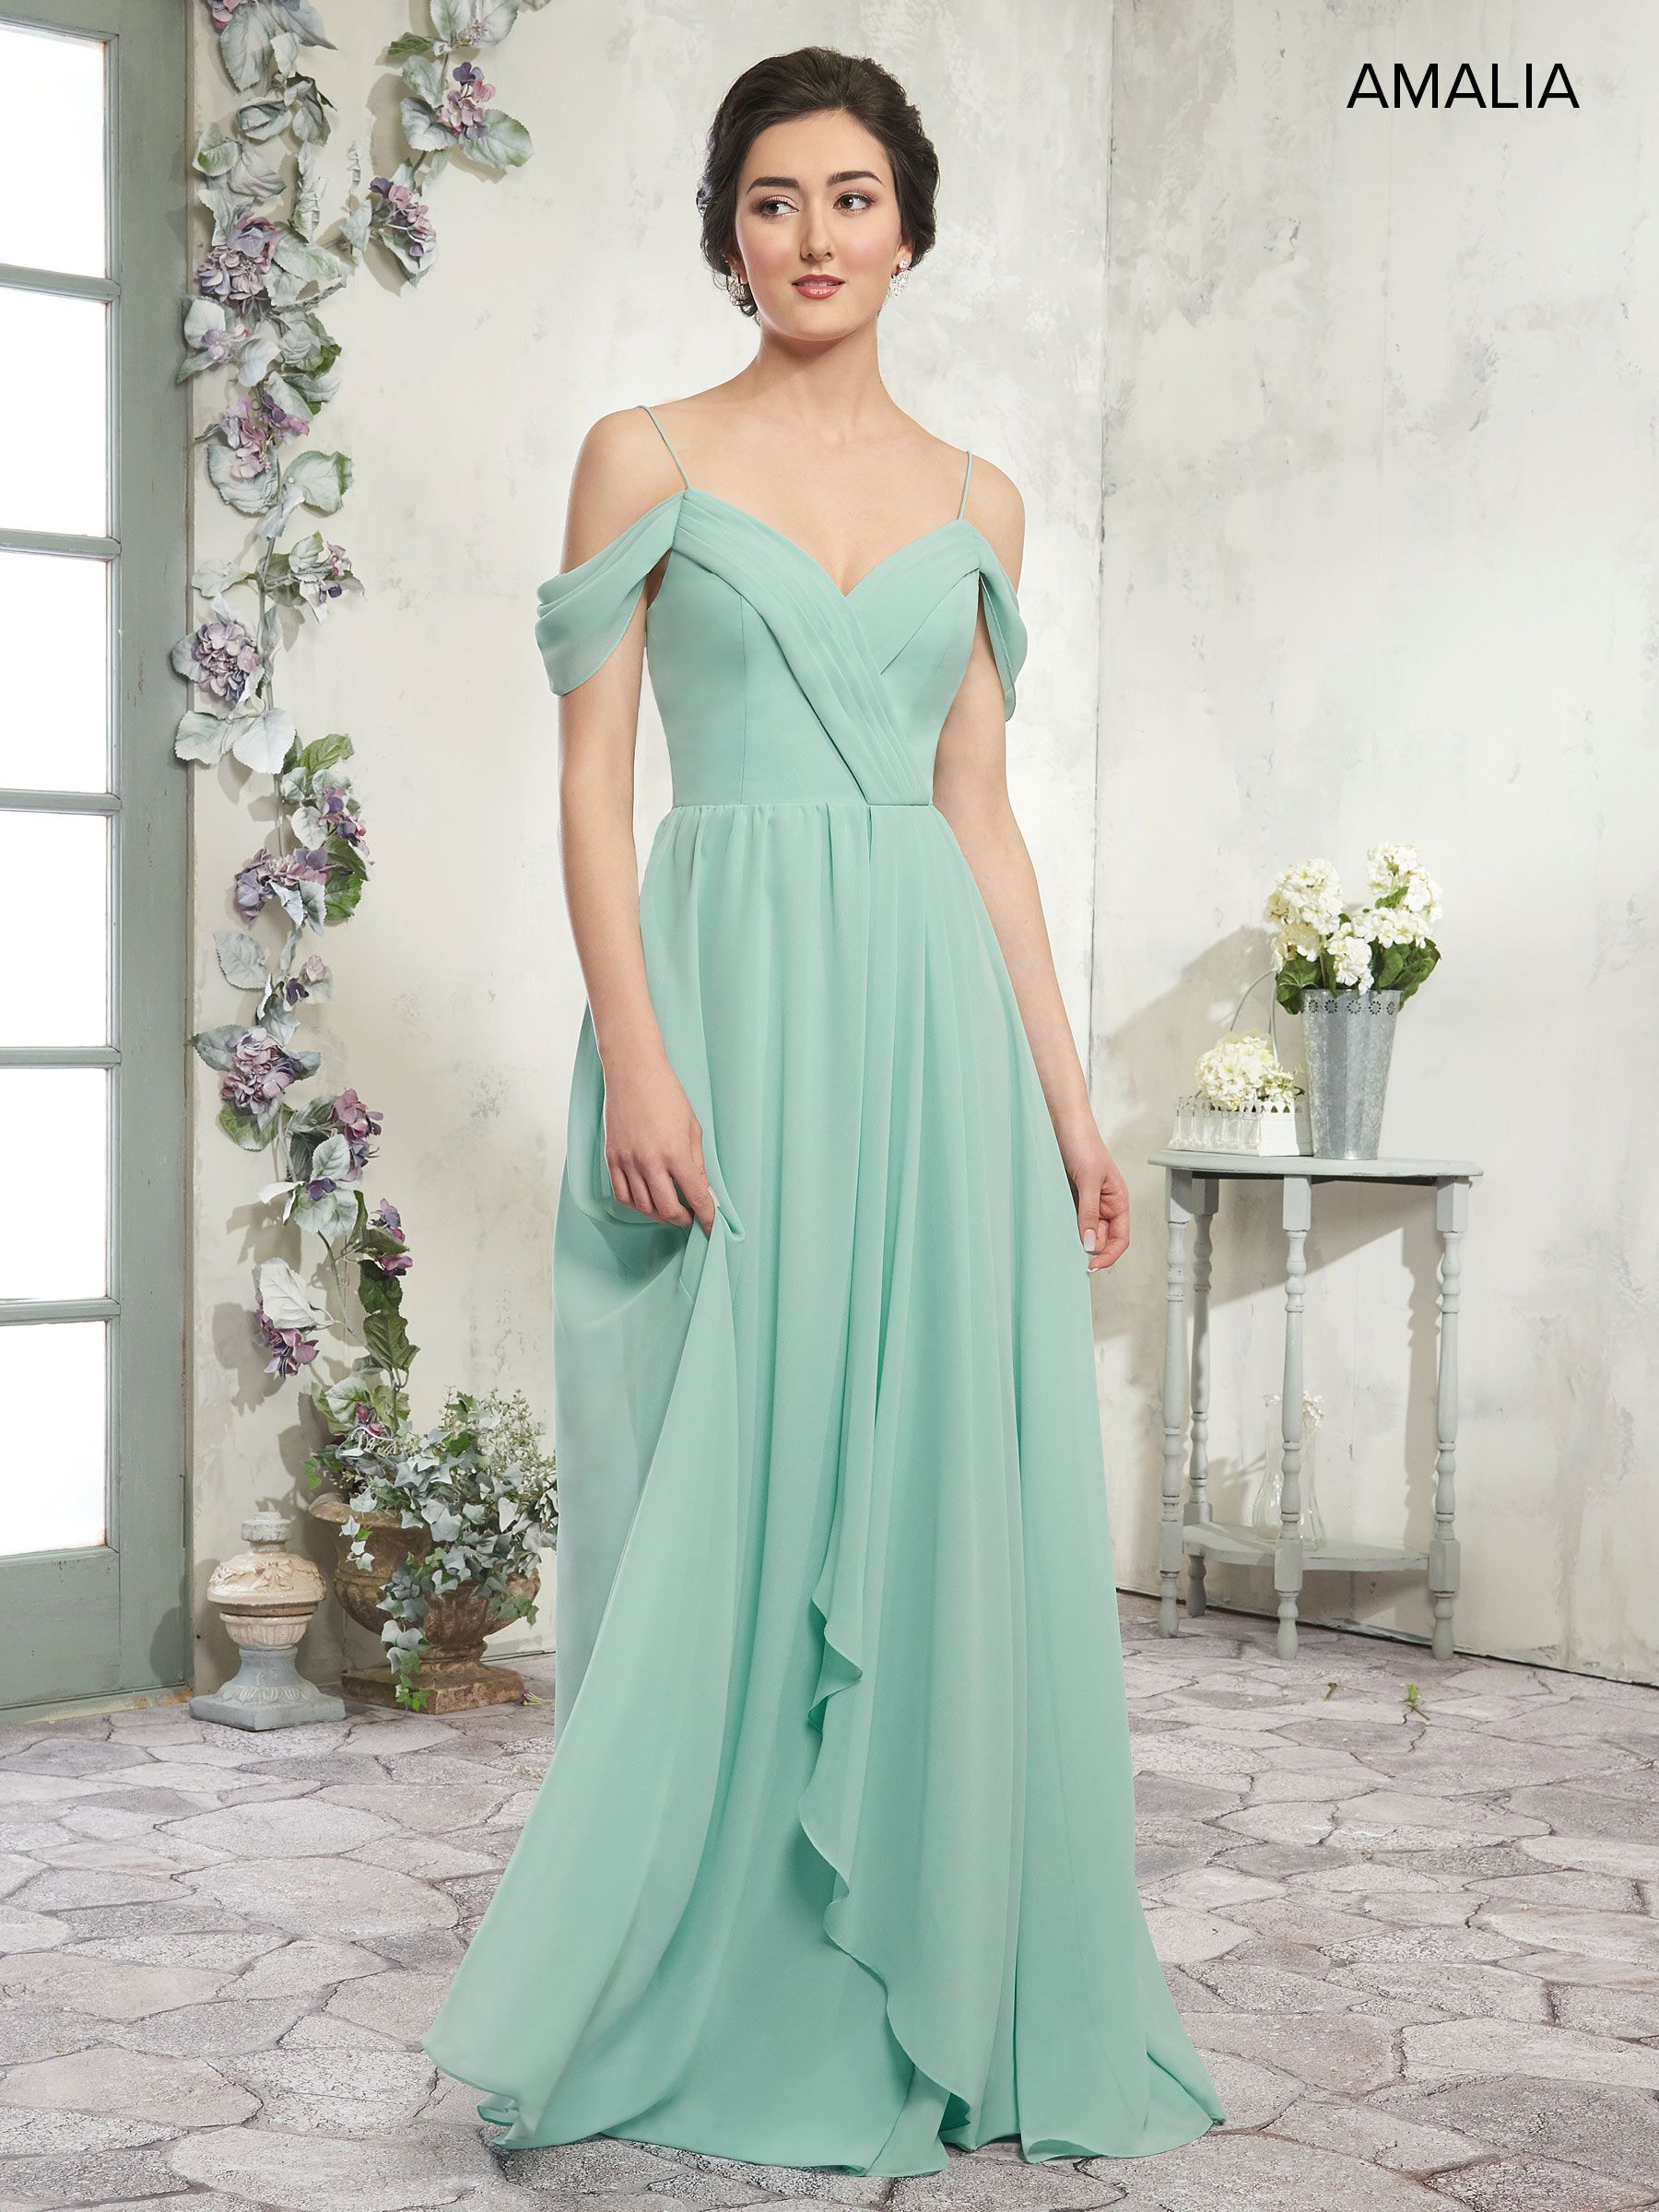 Colorful Lanvin Wedding Gown Pictures - All Wedding Dresses ...